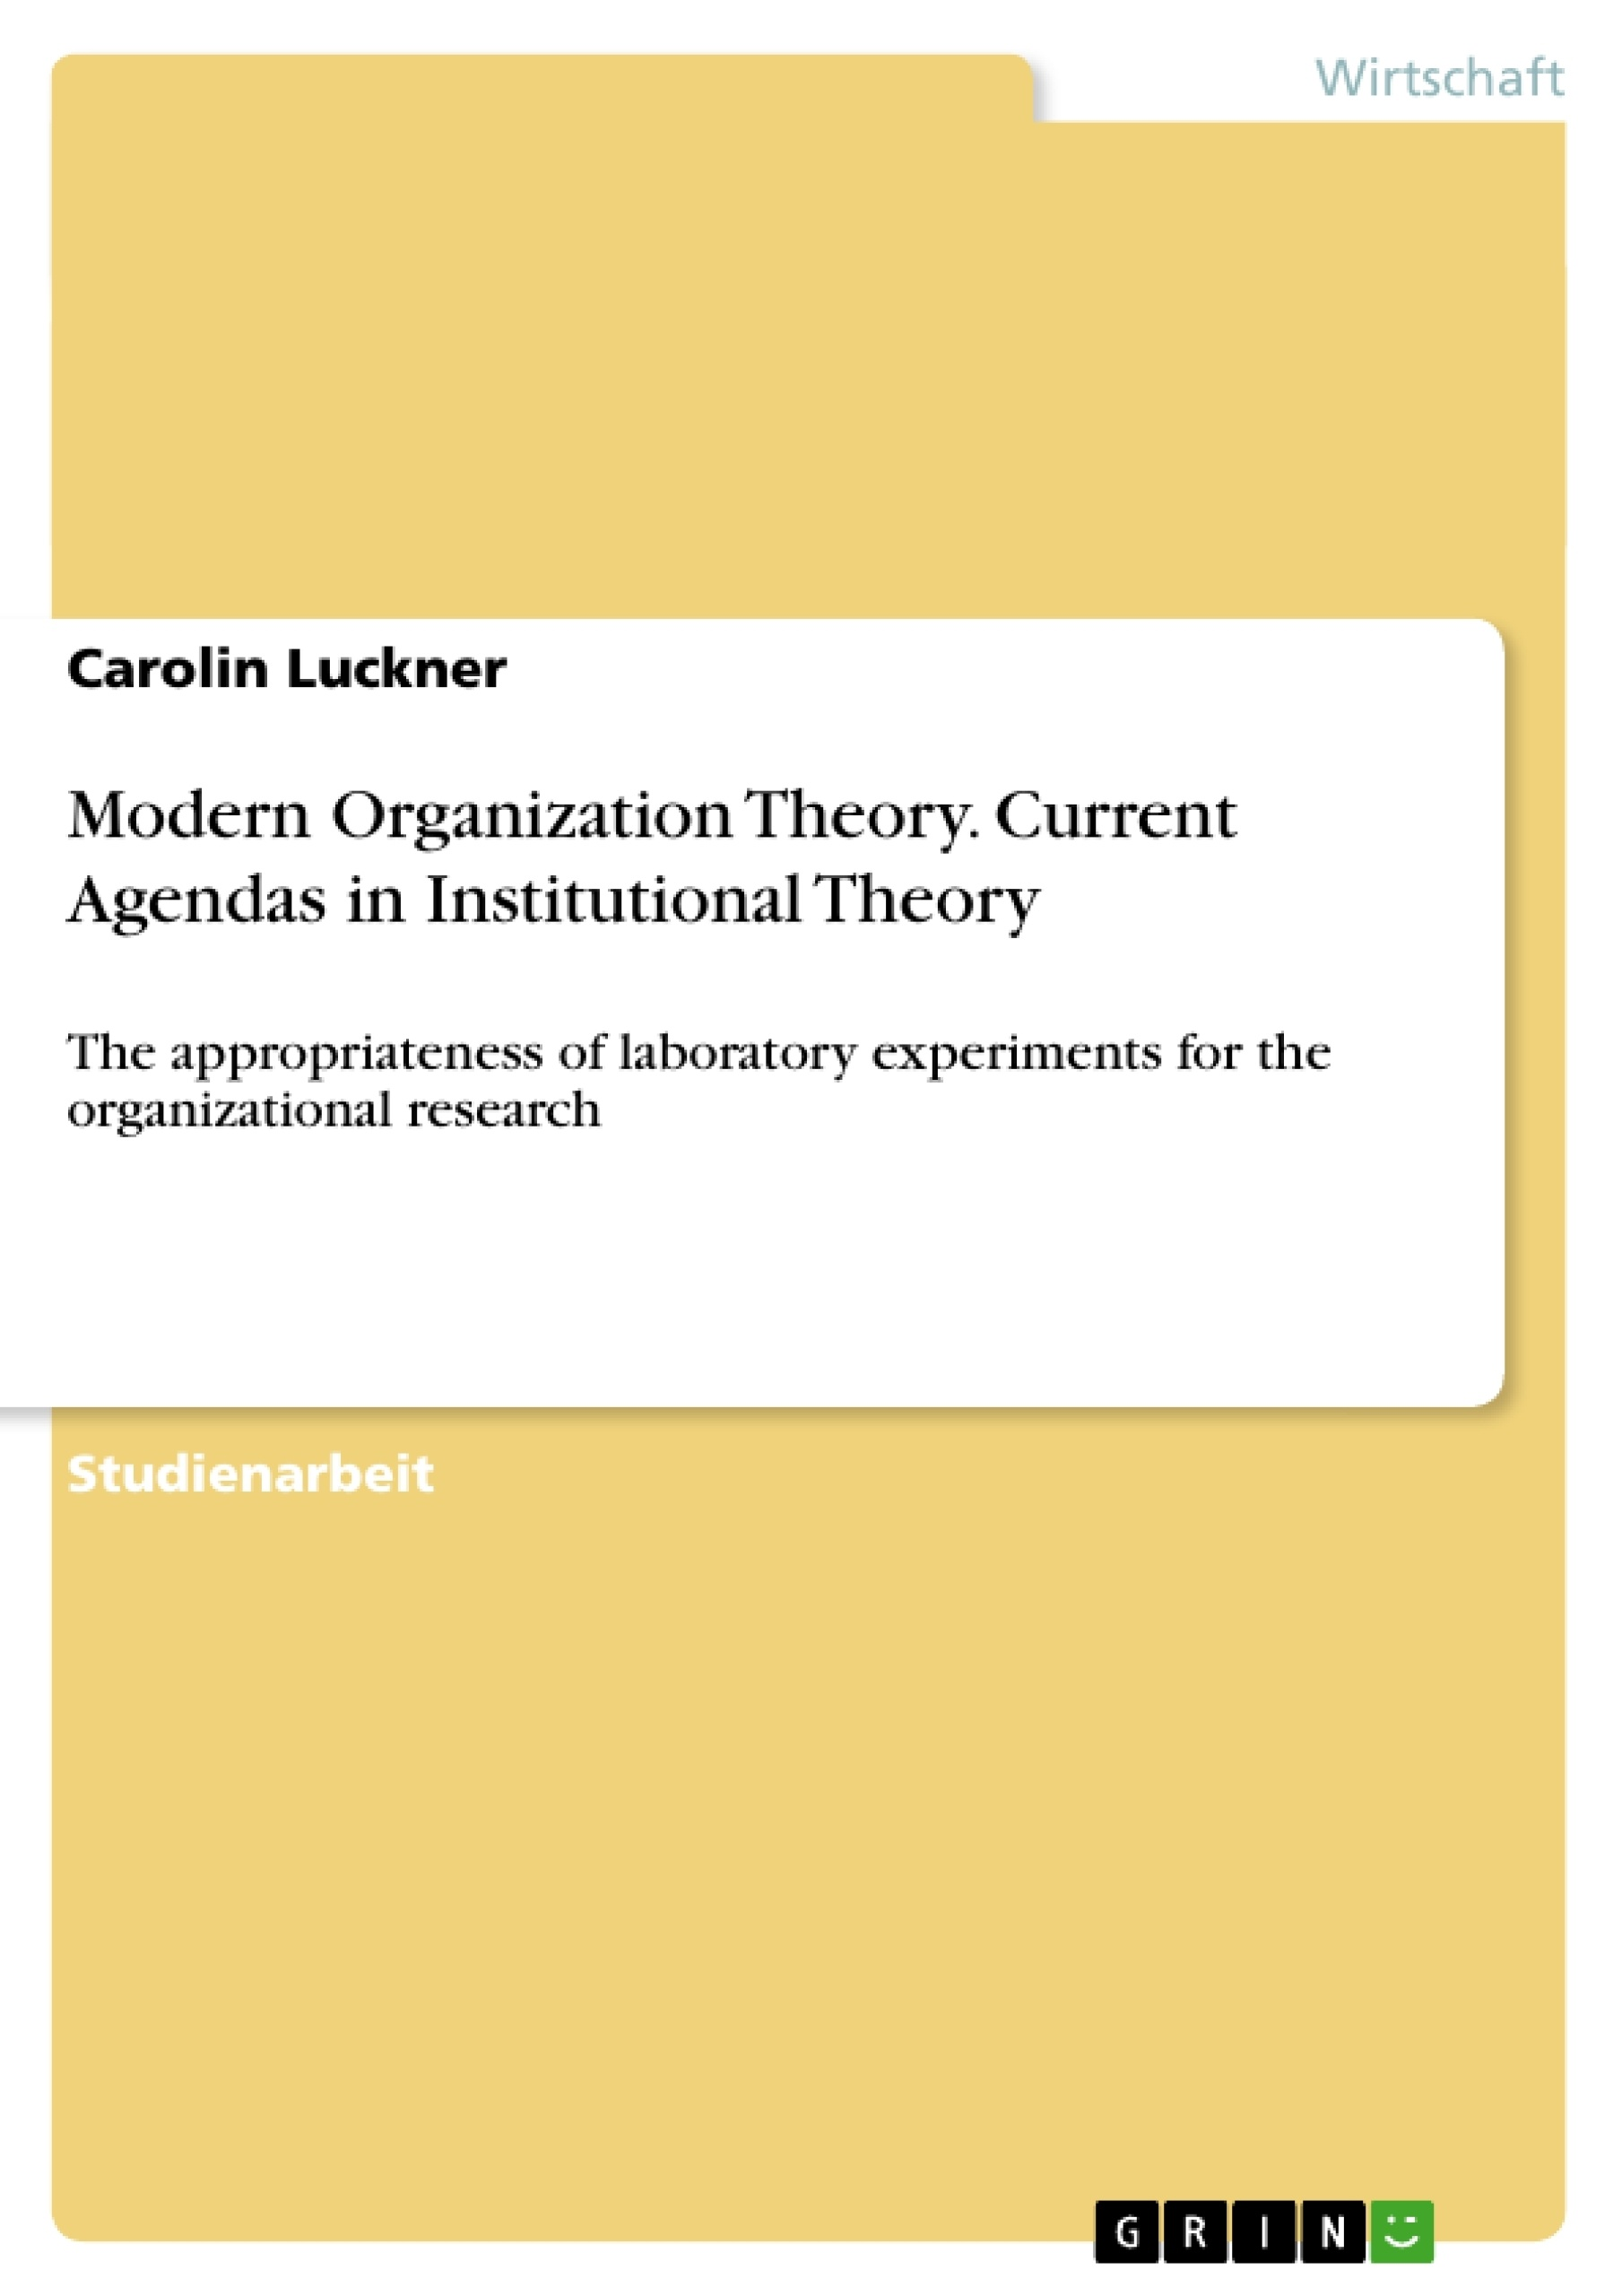 Titel: Modern Organization Theory. Current Agendas in Institutional Theory